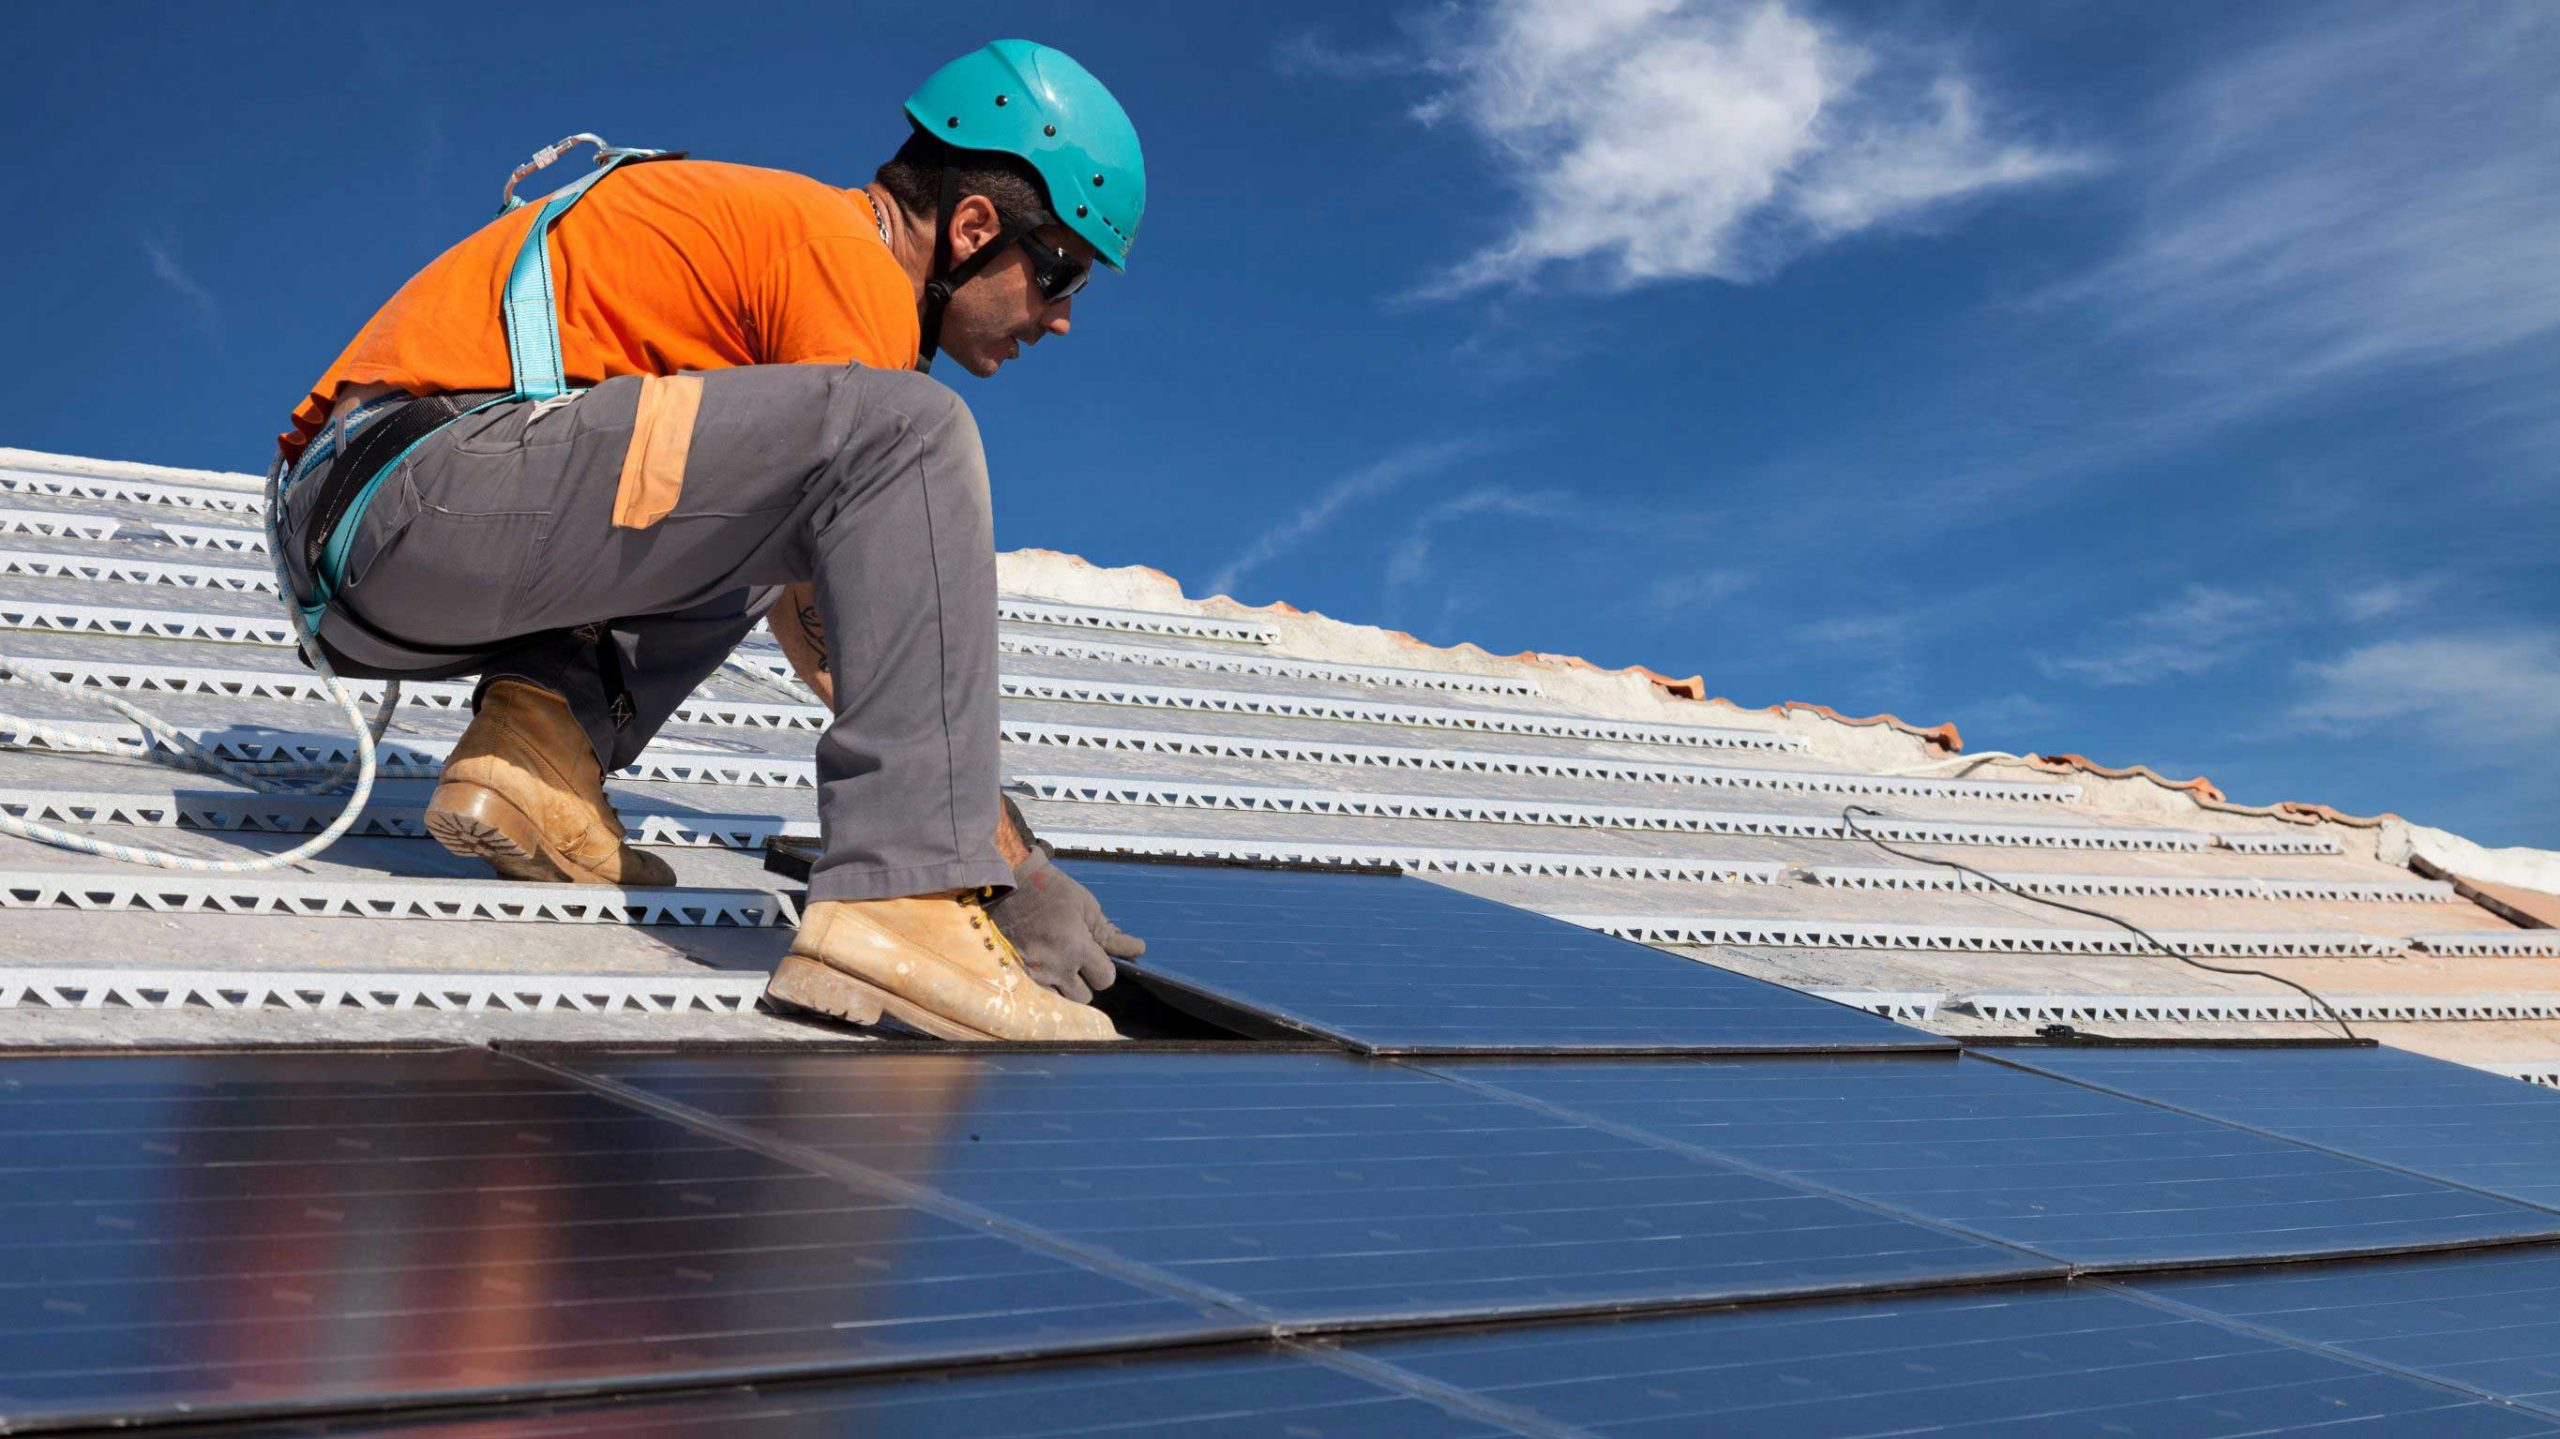 Can I Install My Own Solar Panels? 5 Things to Consider First